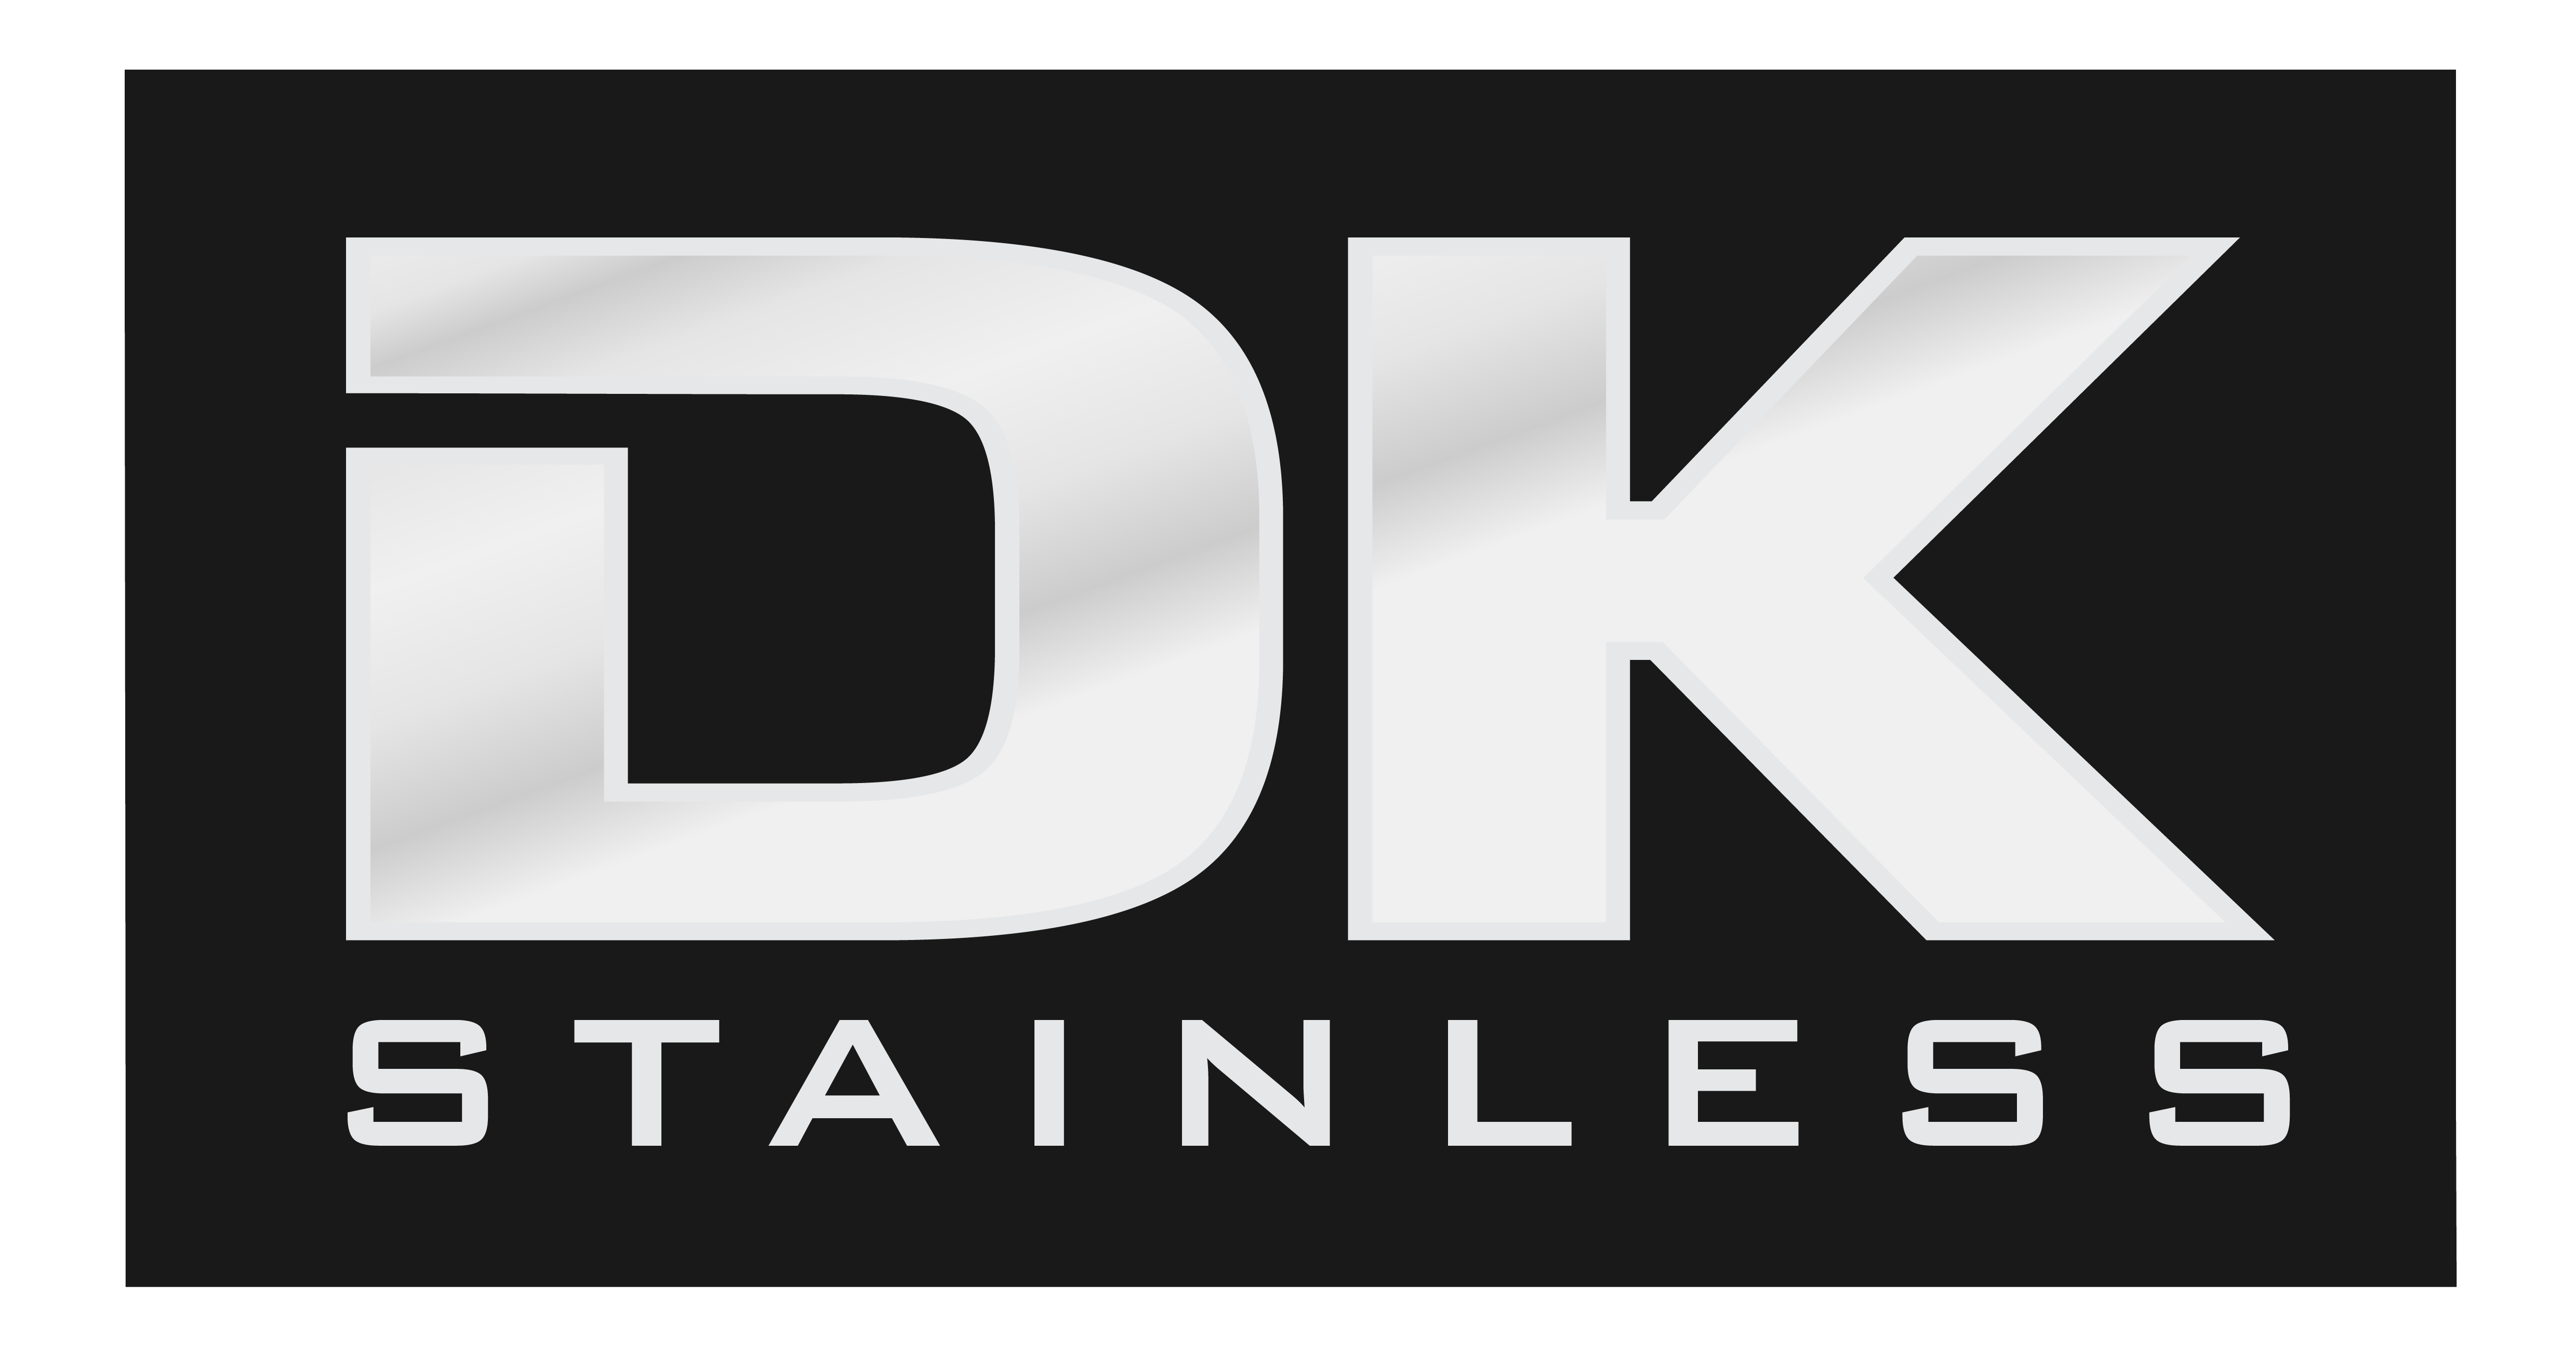 Create a unique logo and business card to help DK Stainless stand out from the rest!